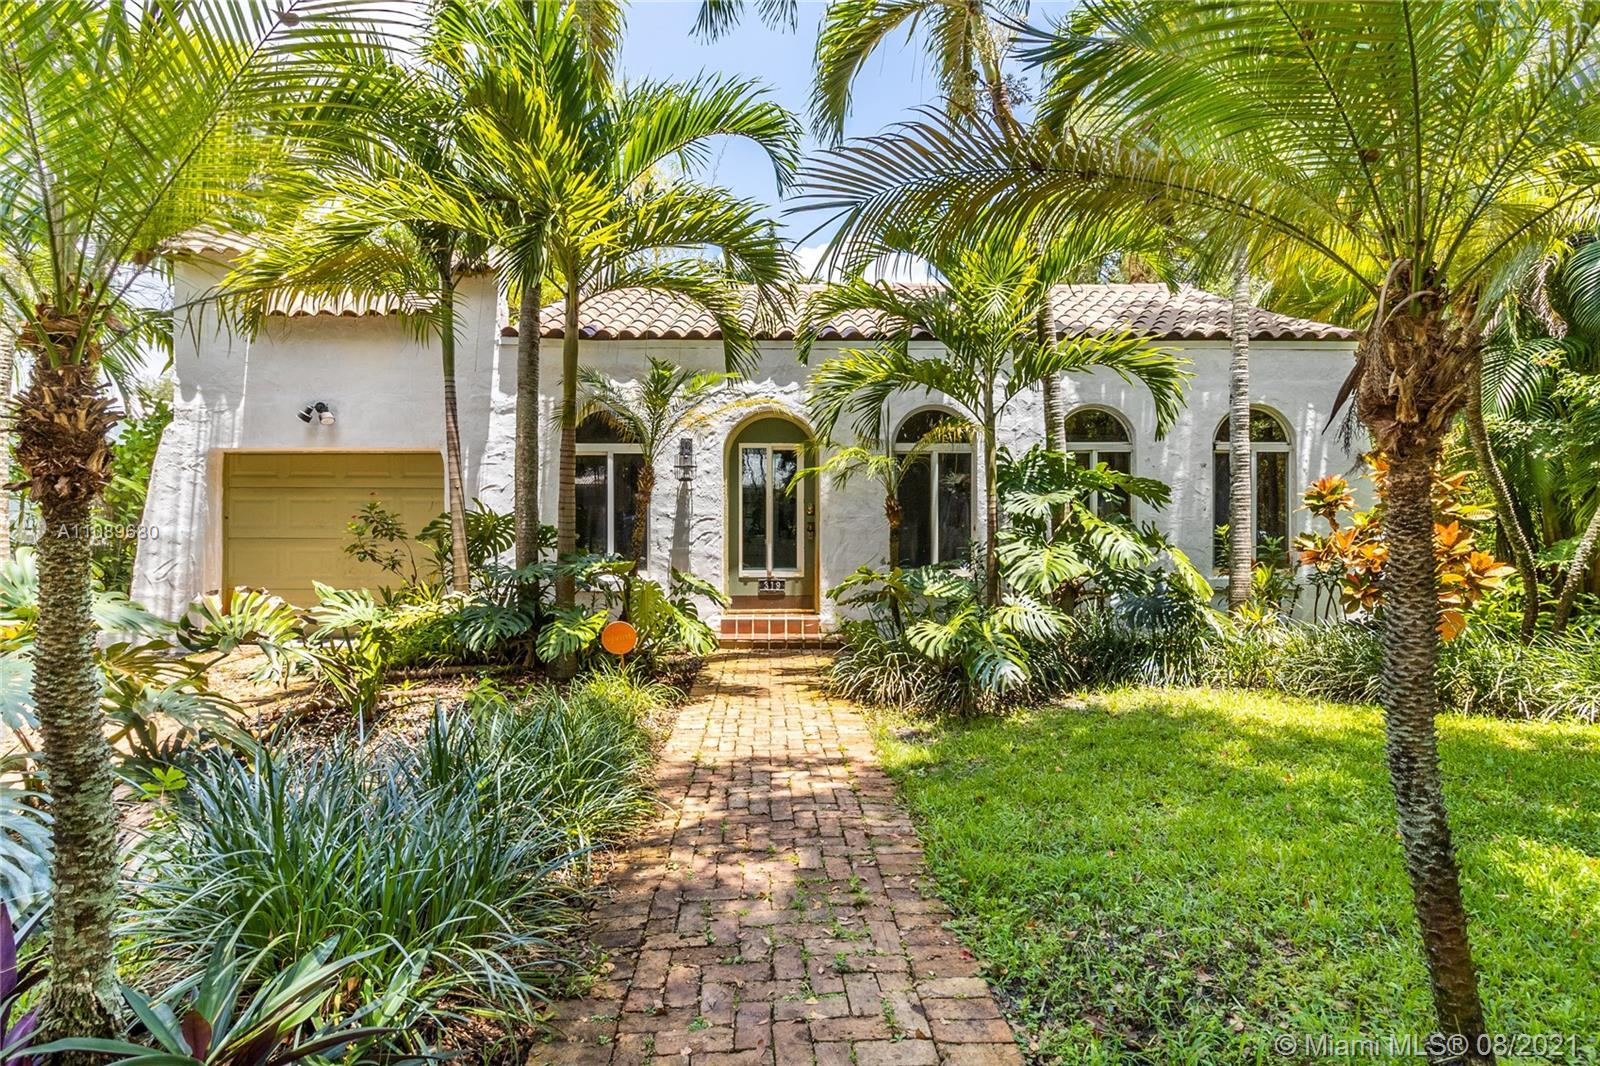 Spectacular botanical paradise in the heart of Miami Shores. This majestic property just received an